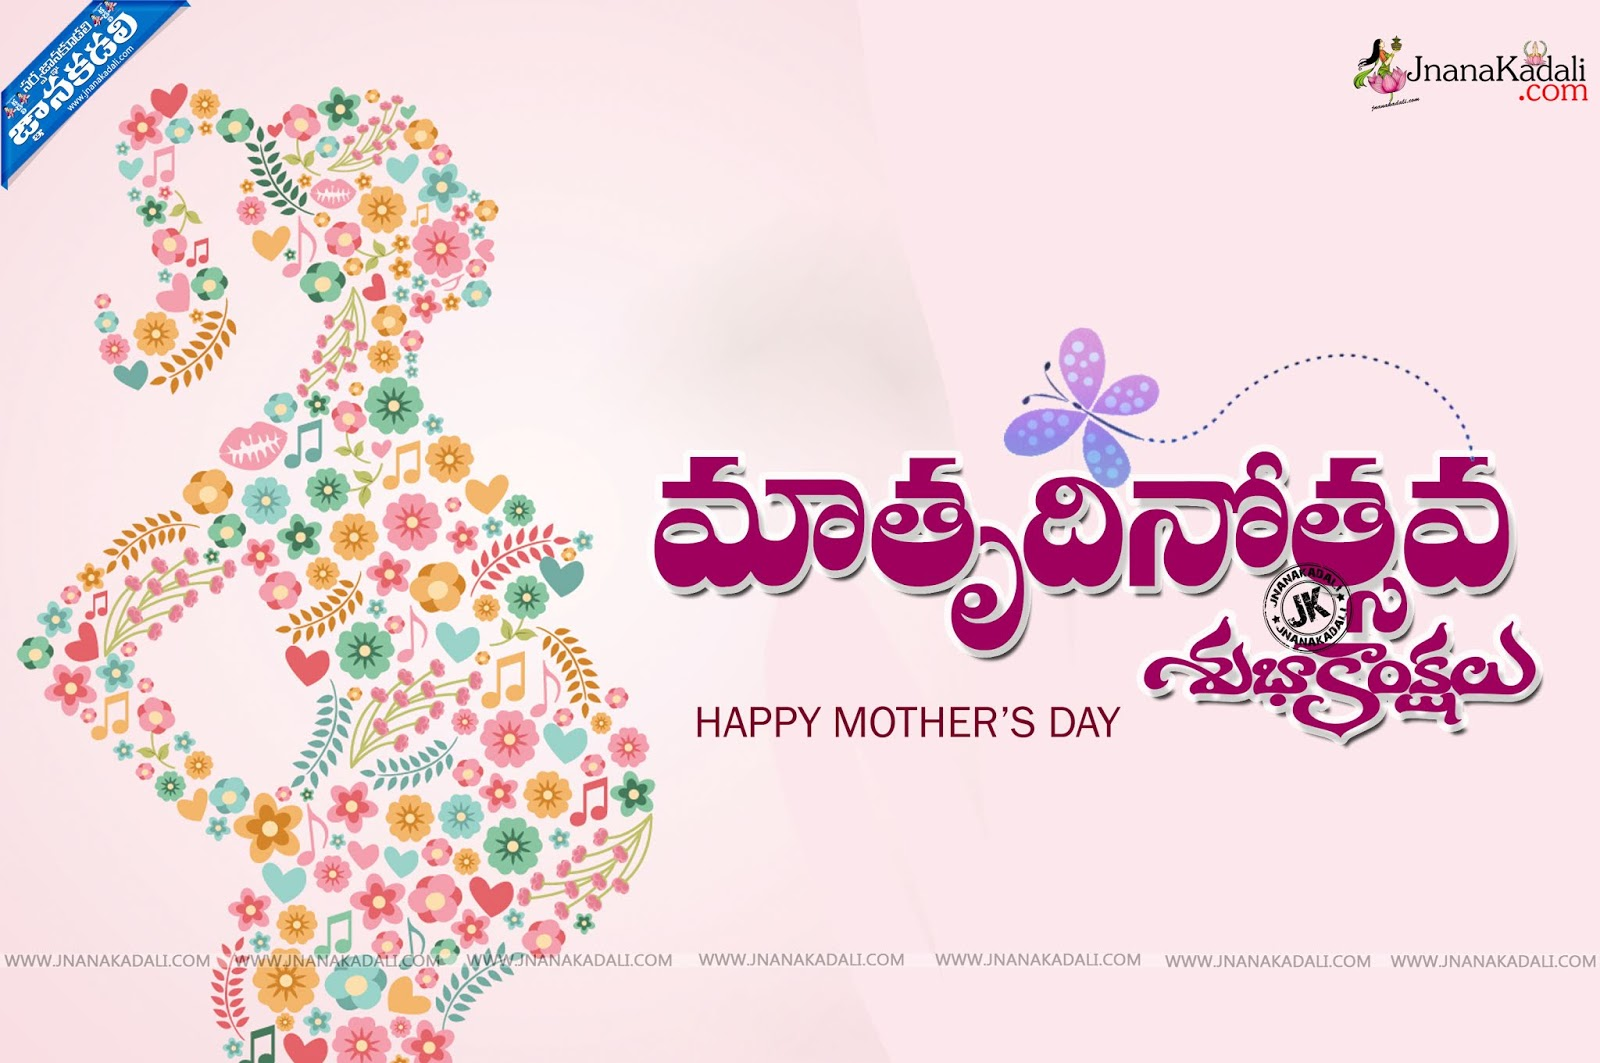 Mothers Day 2019 Wishes Messages Images Status Jnana Kadalicom